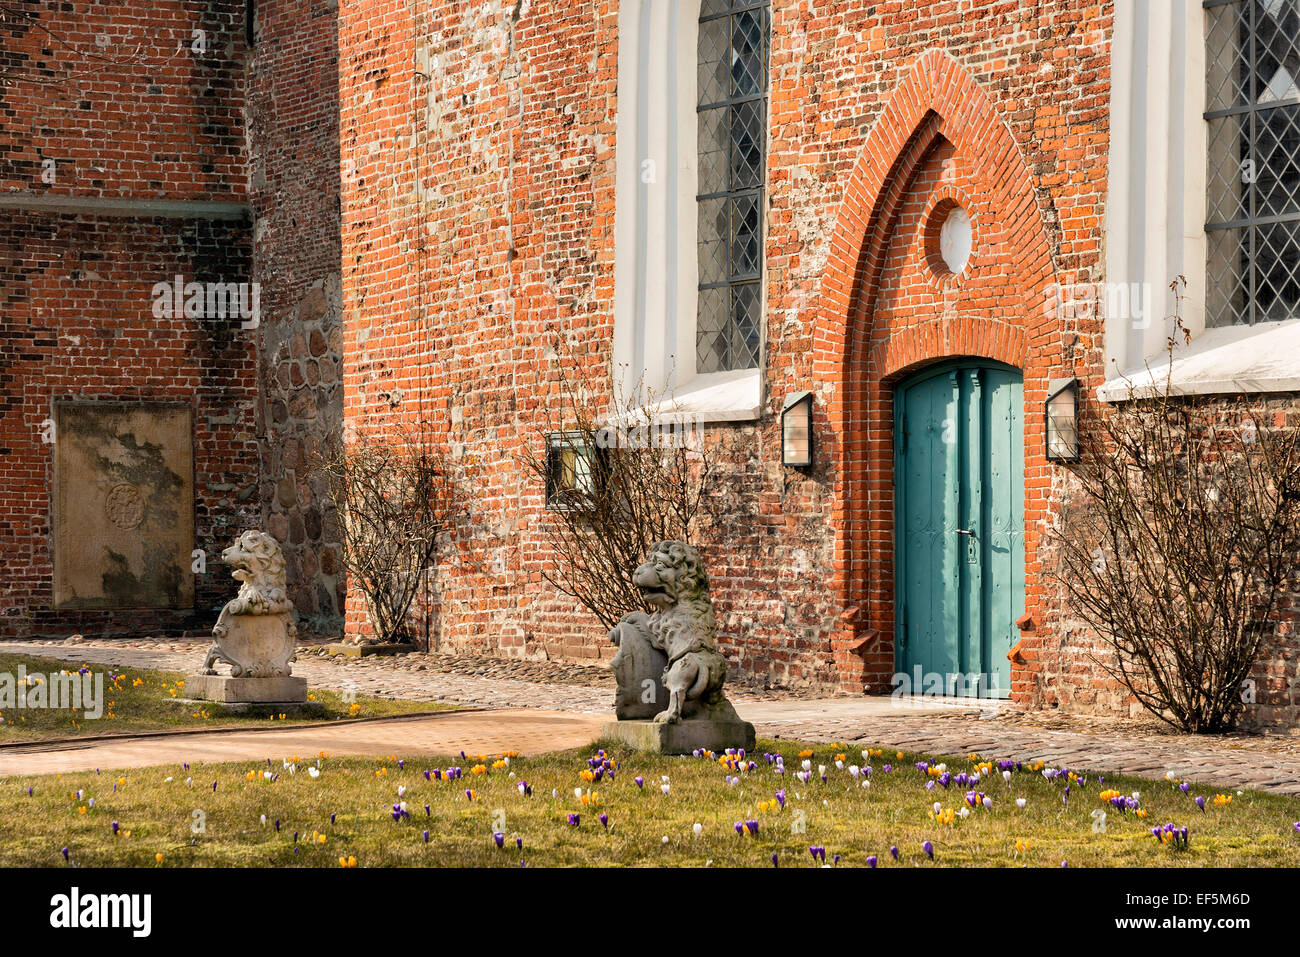 Image of church in Tonning, Northern Germany - Stock Image